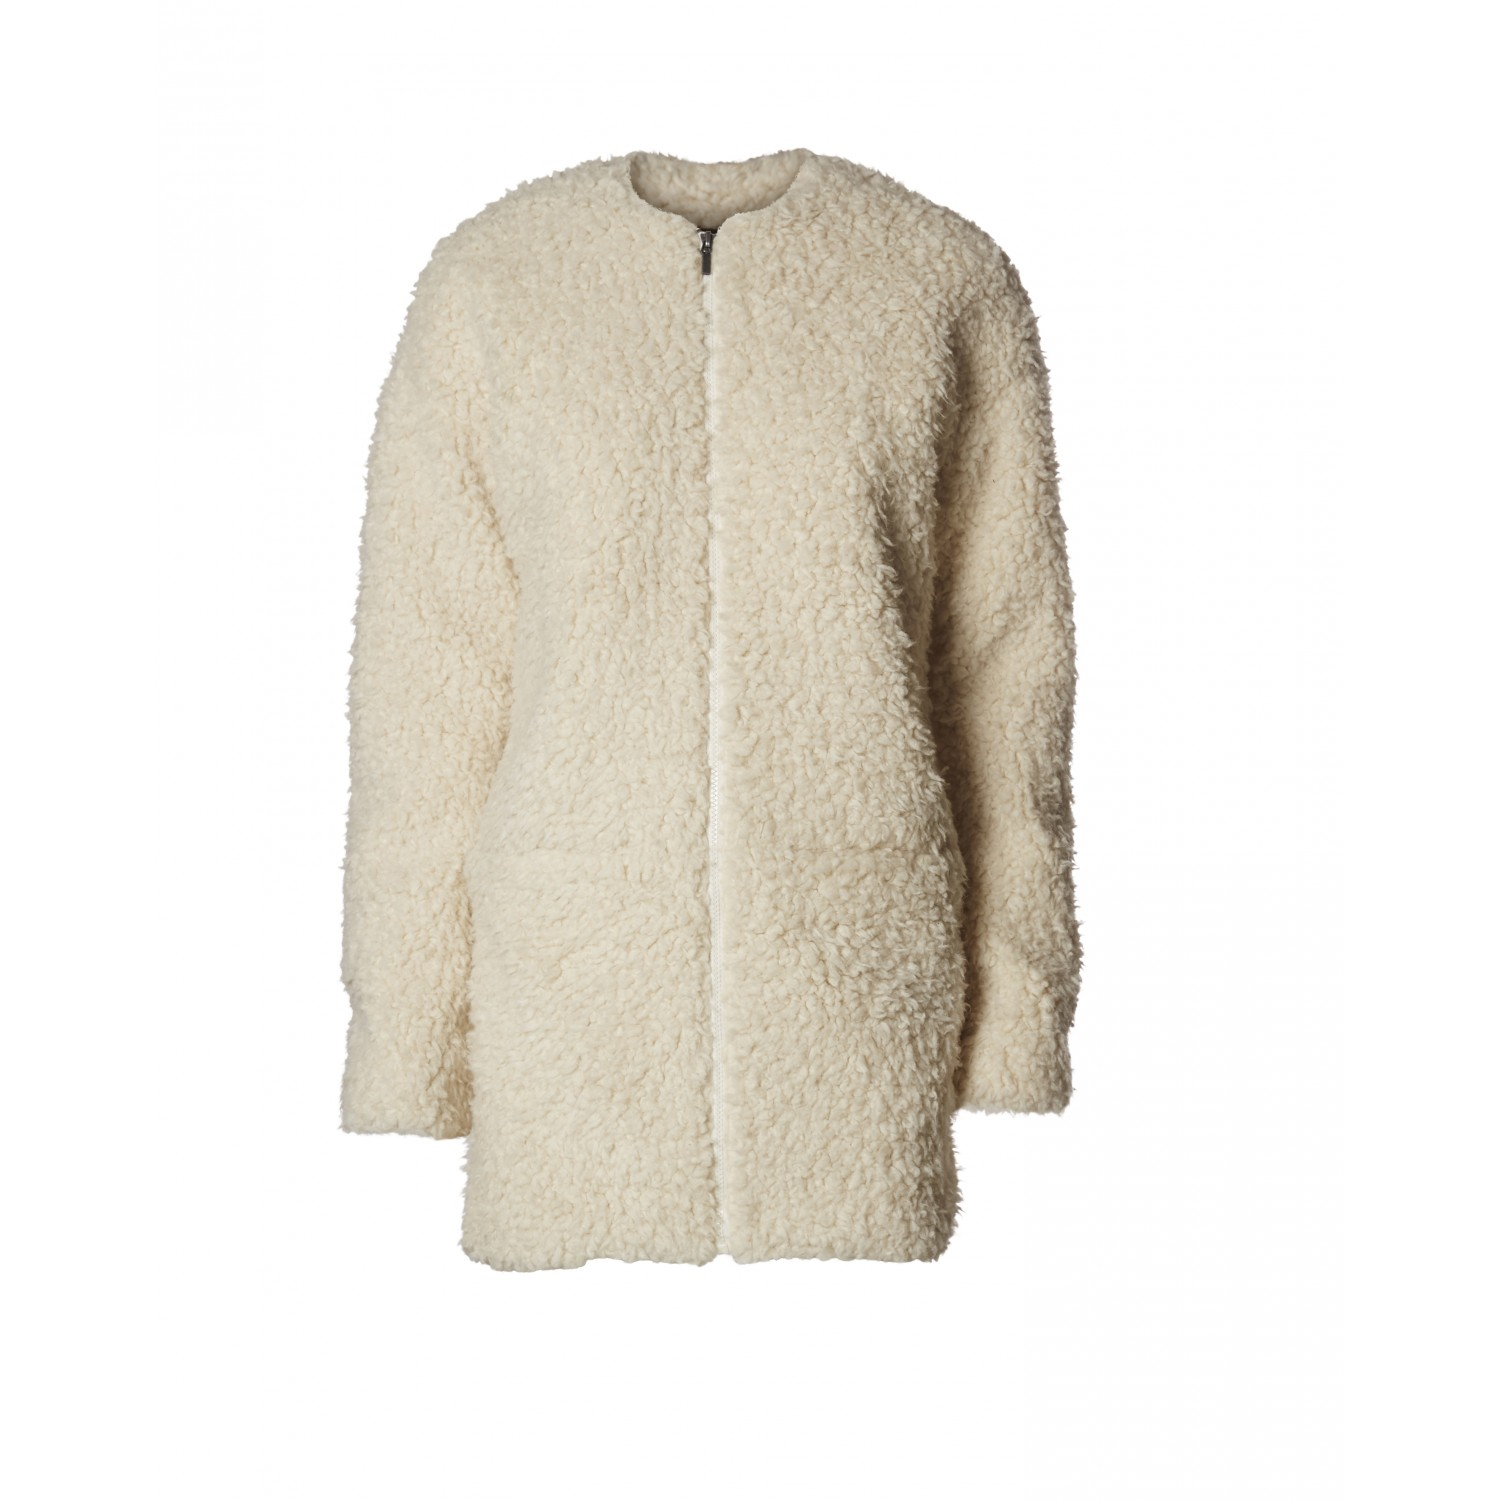 Super Minimum - Manteau mouton blanc pour femme FI74